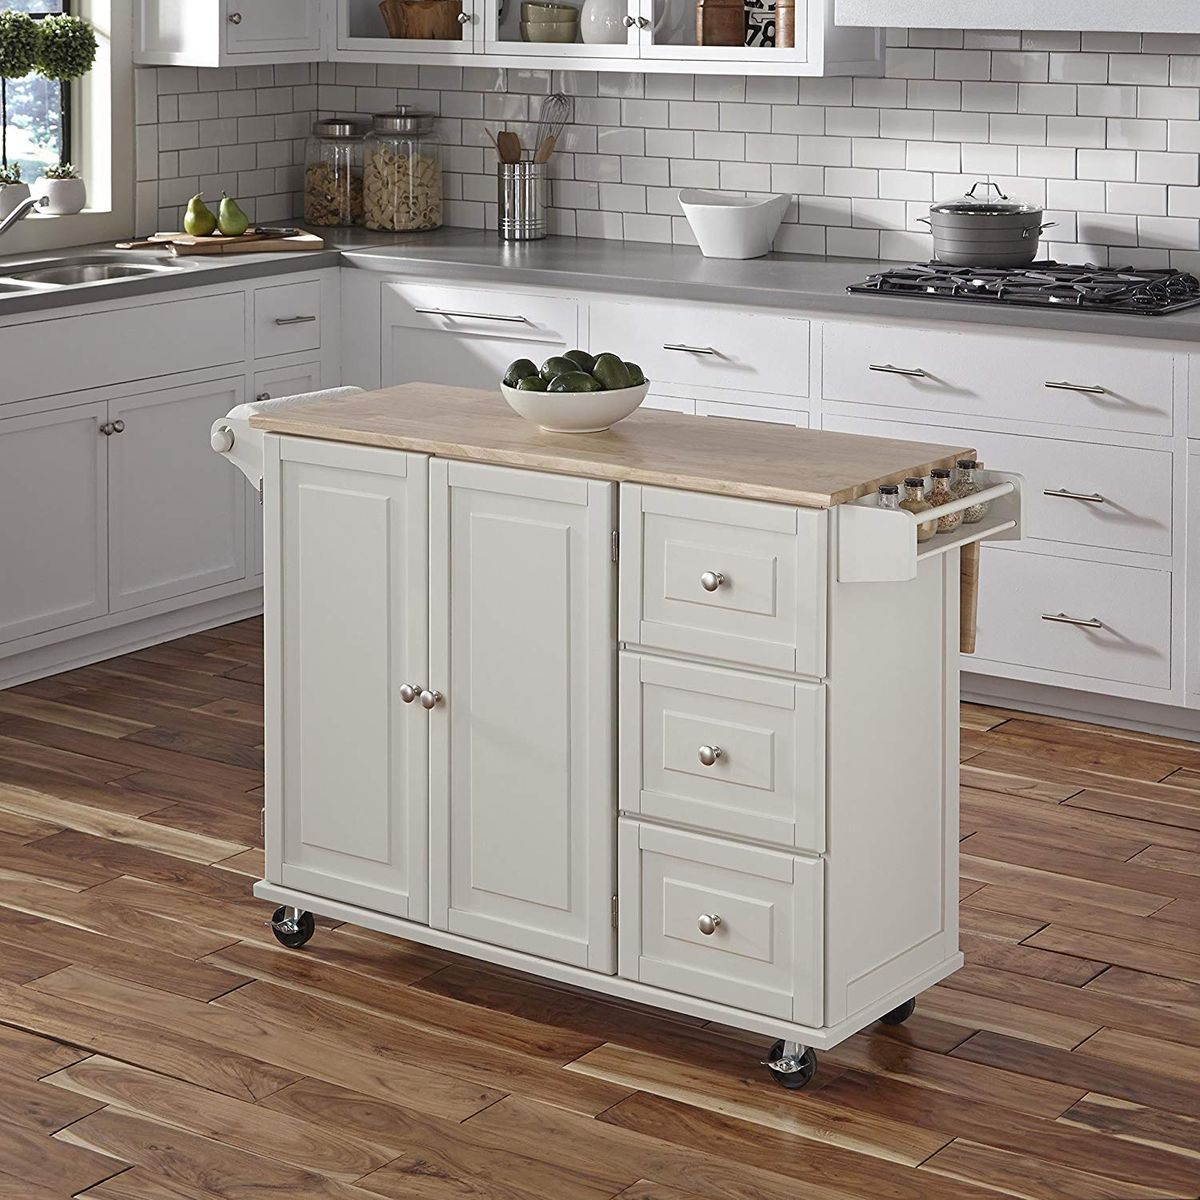 Image of: 9 Best Kitchen Carts And Portable Kitchen Islands 2020 The Strategist New York Magazine